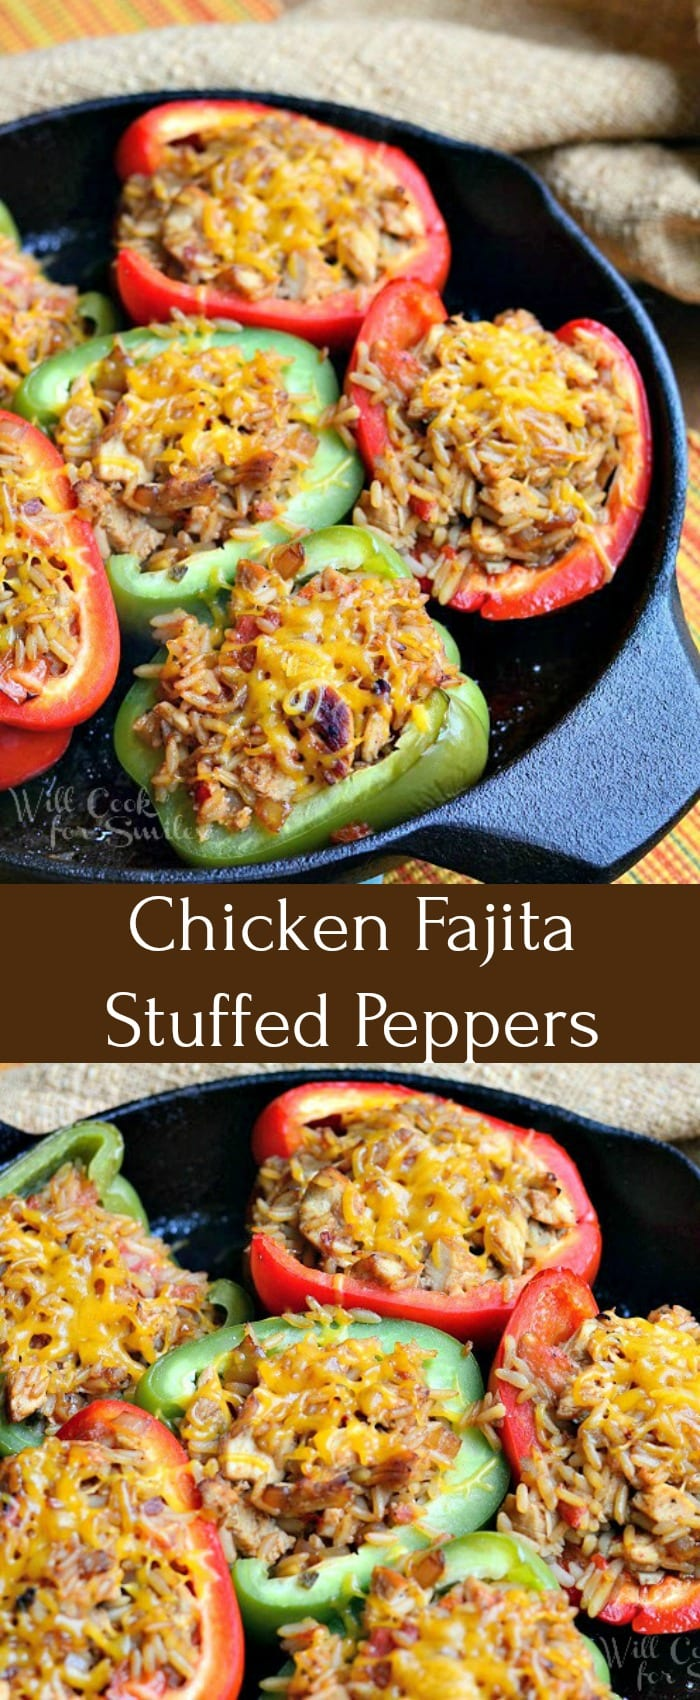 Chicken Fajita Stuffed Peppers Recipe. Delicious dinner made with red and green bellpeppers, stuffed with fajita marinated grilled chicken and Spanish rice mixture. #stuffedpeppers #chicken #rice #spanishrice #peppers